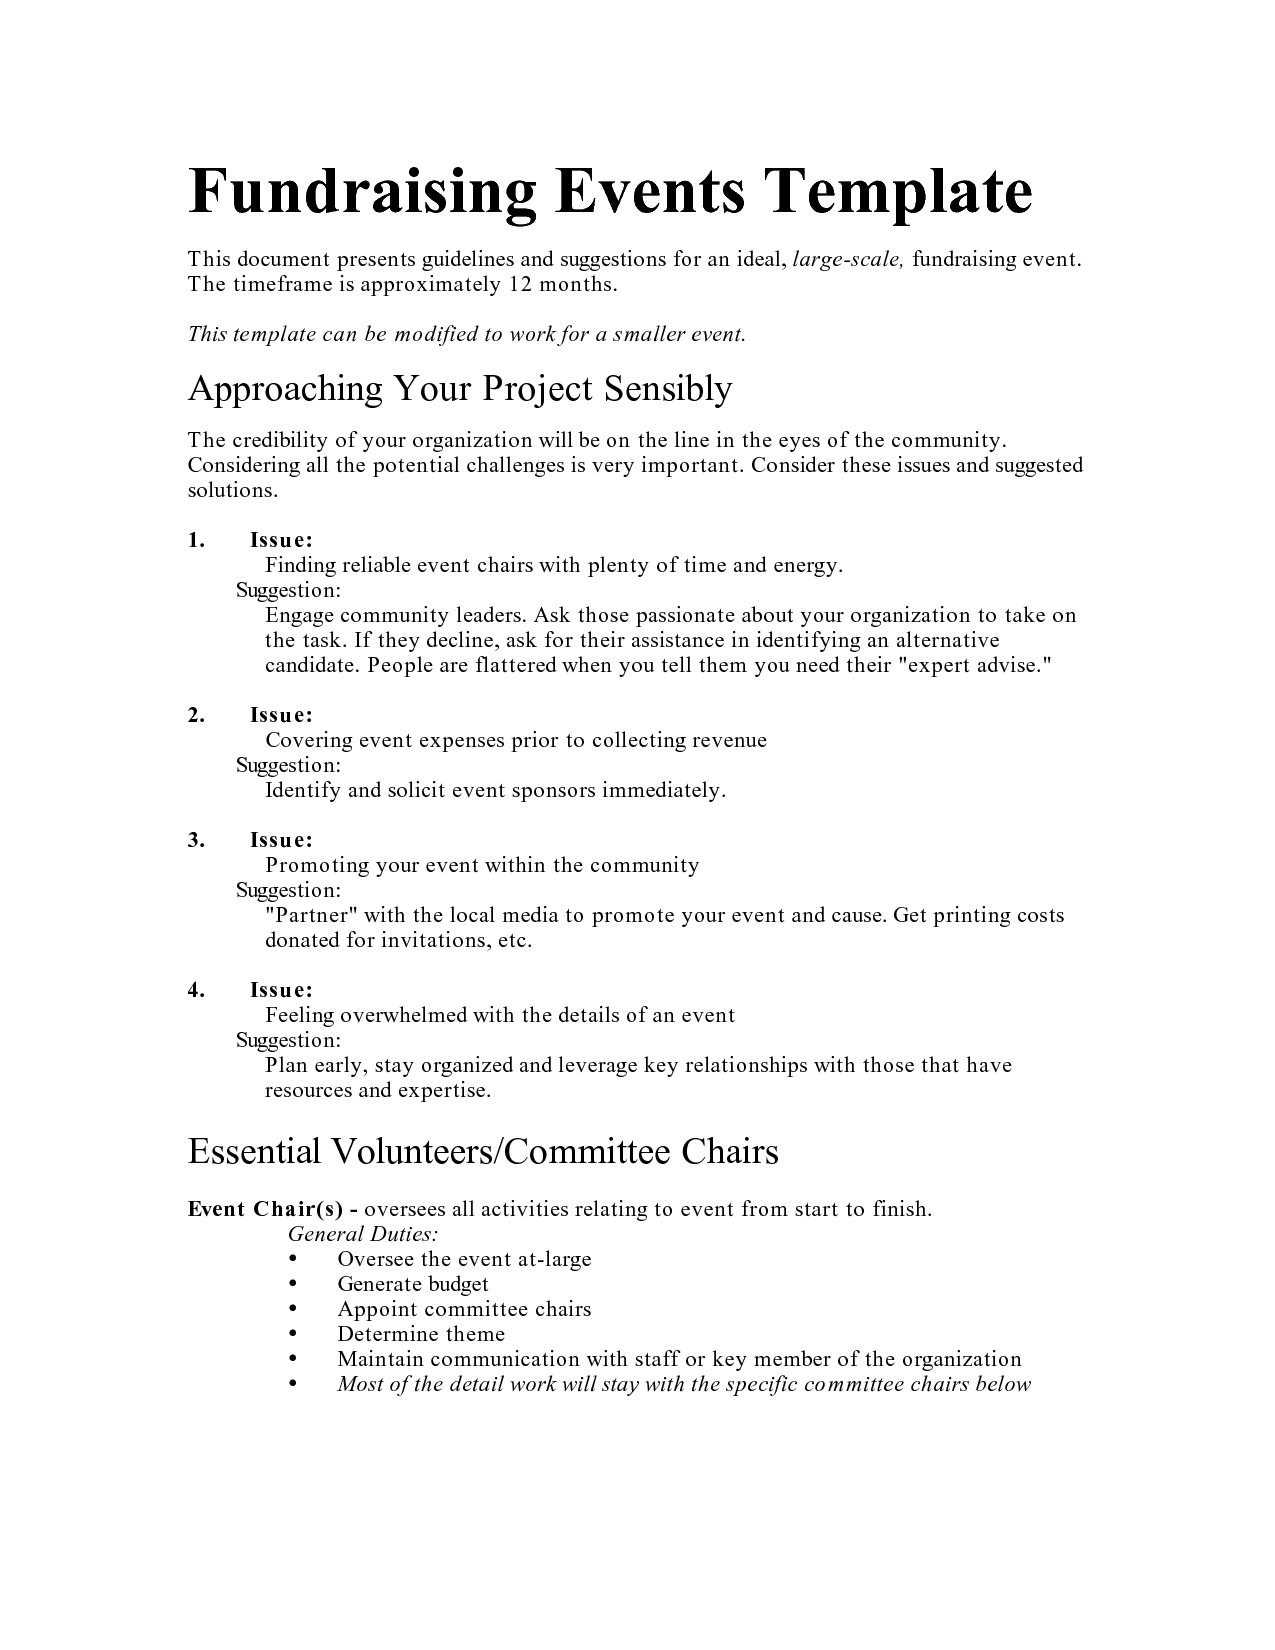 fundraising event budget spreadsheet excel Google Search – Template for Fundraiser